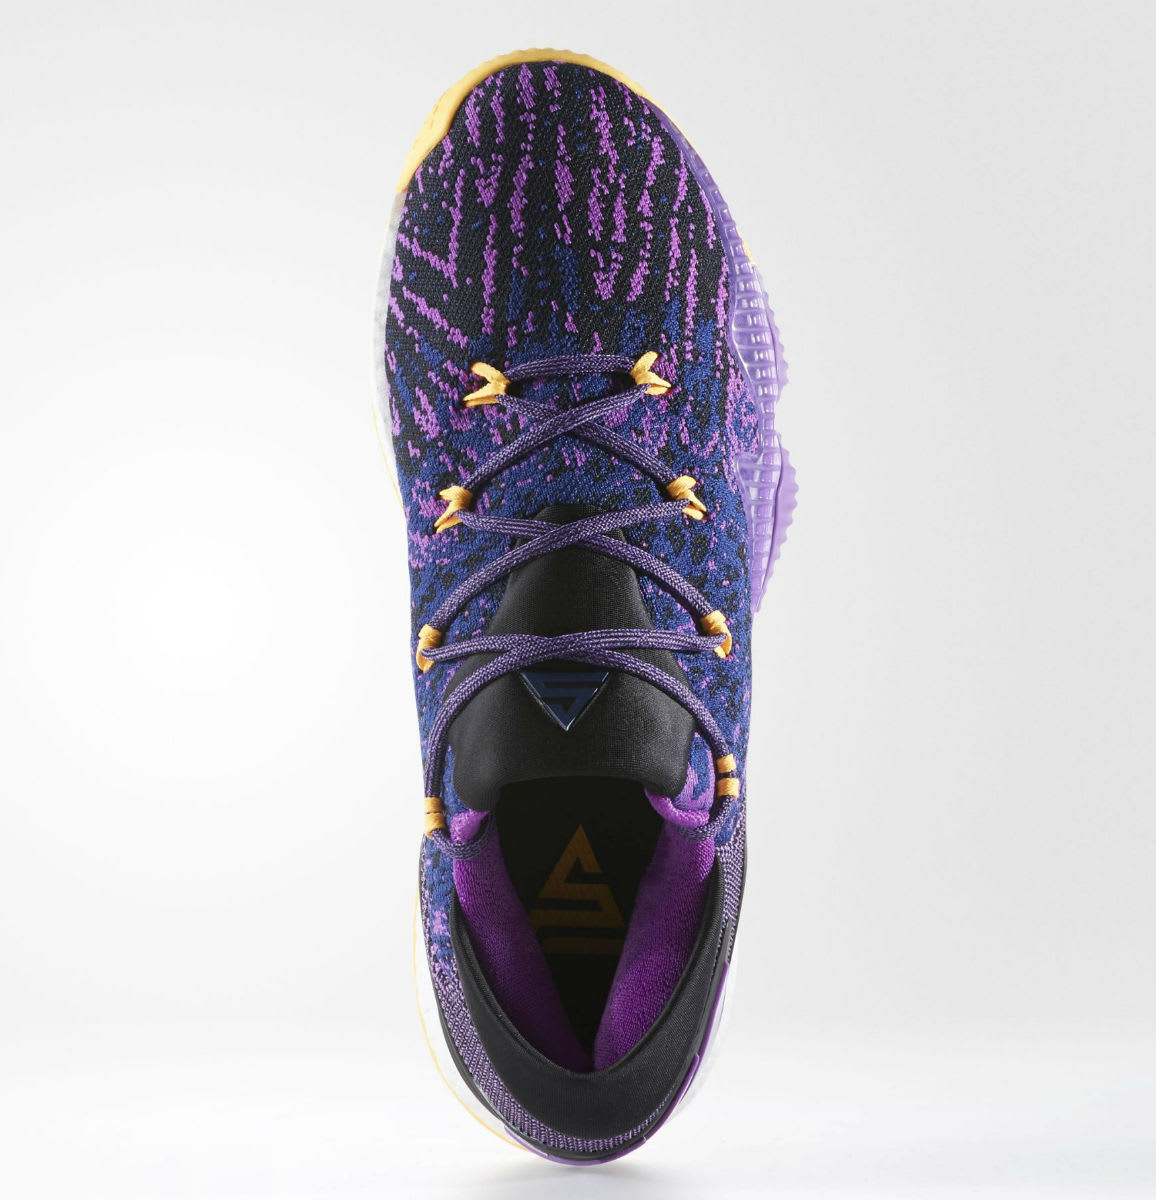 Adidas Crazylight Boost Swaggy P Lakers Top BB8175